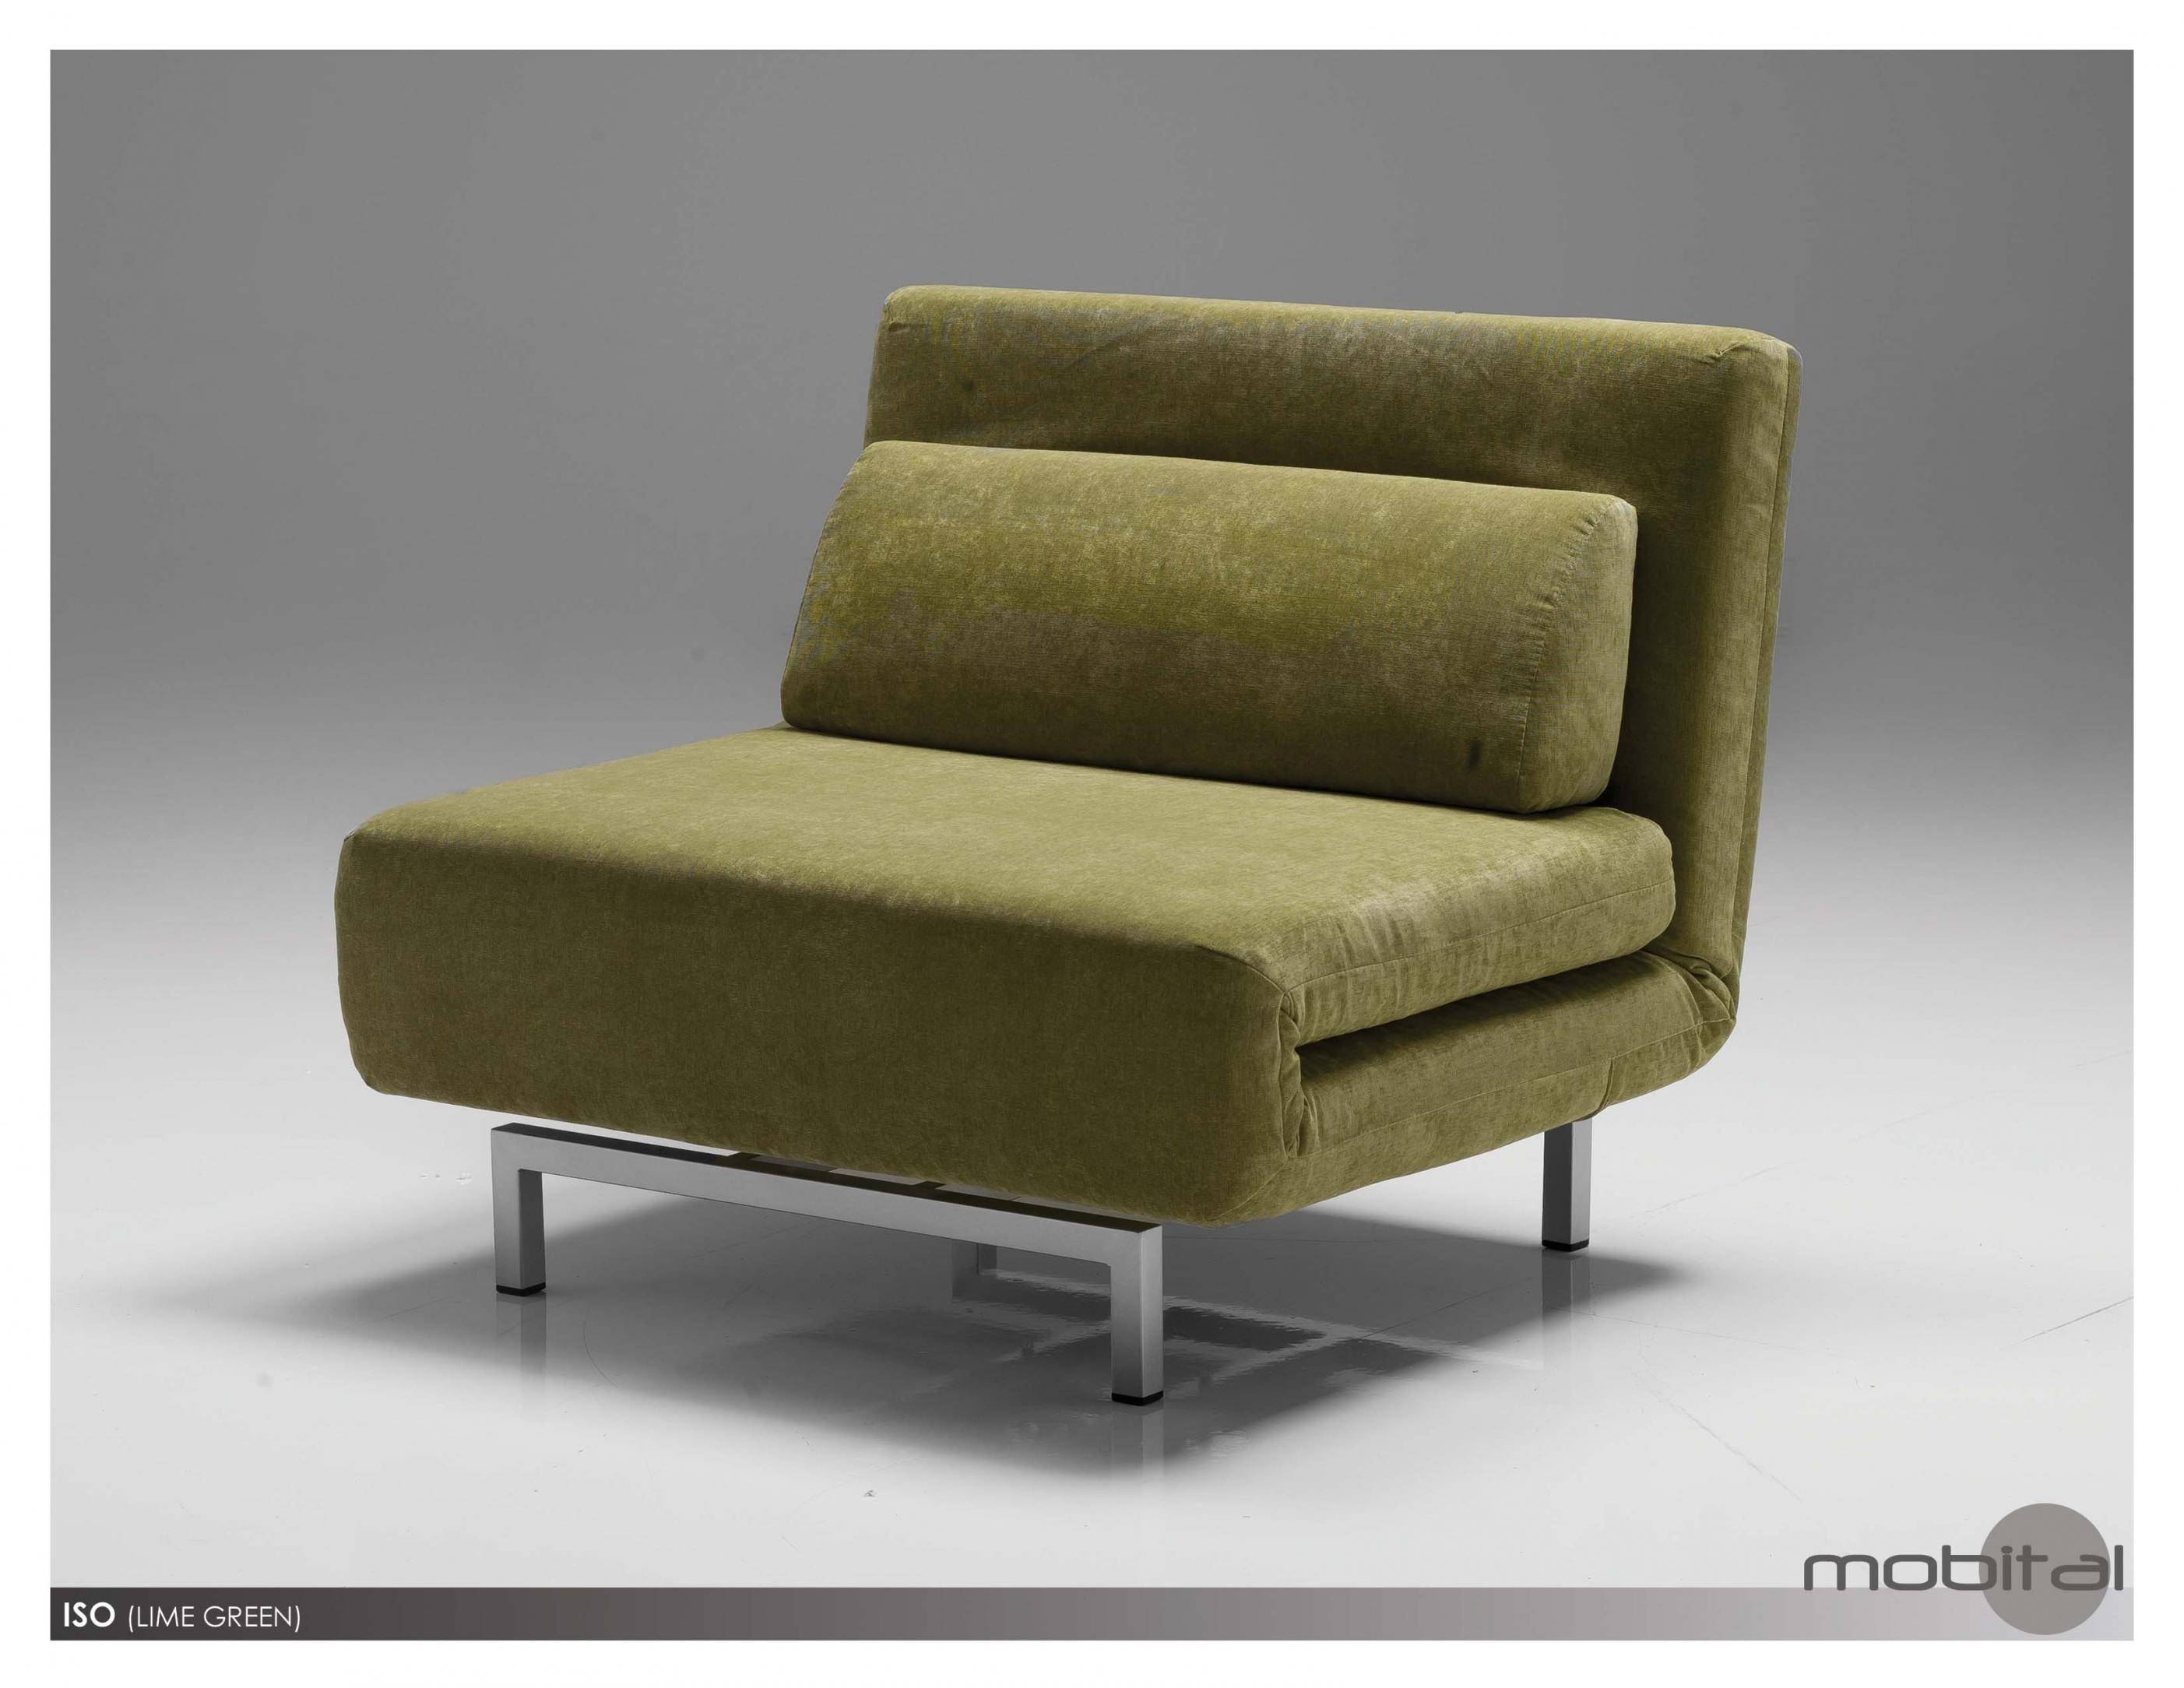 Elegant Single Sofa Bed Chairs – Merciarescue Throughout Single Chair Sofa Bed (Image 8 of 20)